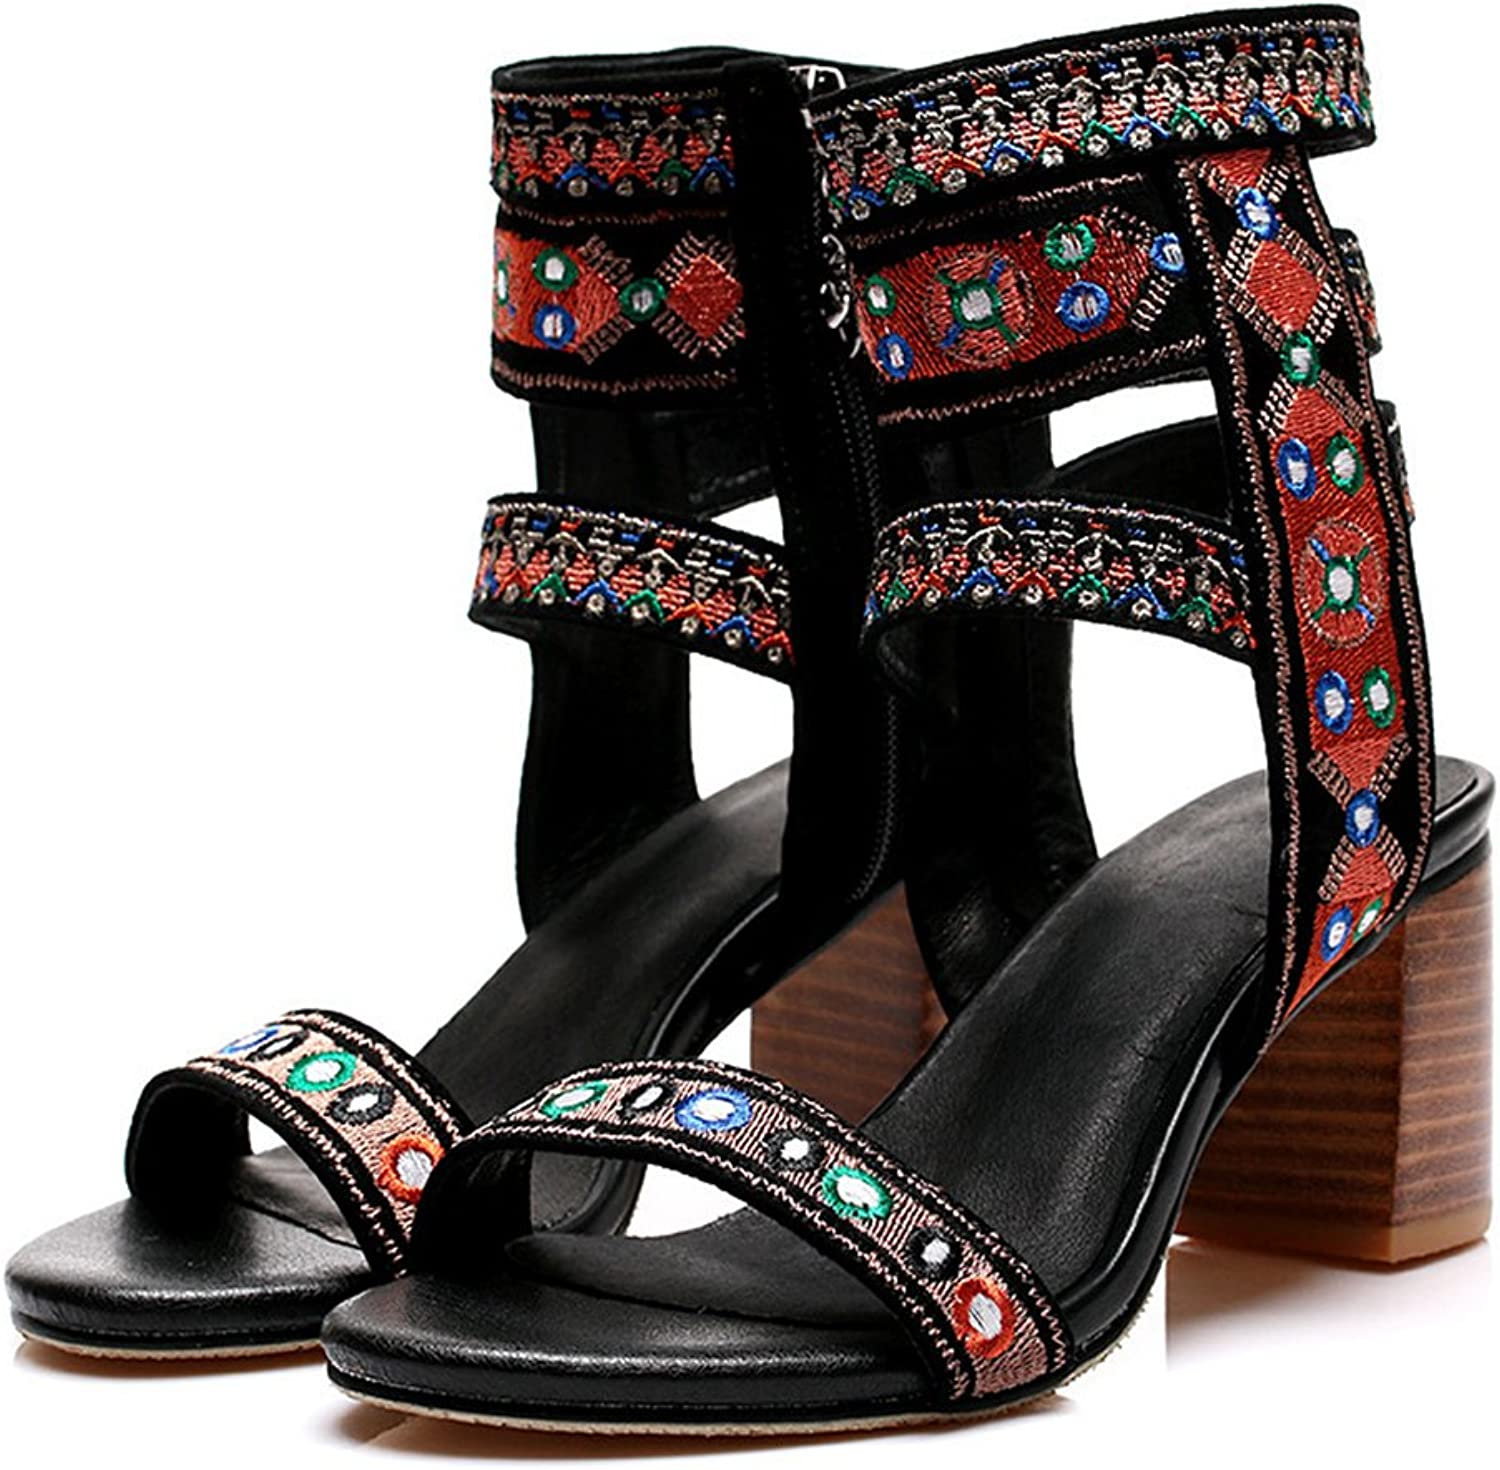 Btrada Roman Sandals for Women Fashion Embroidery Design Unique Style Wedge shoes Heeled Sandal